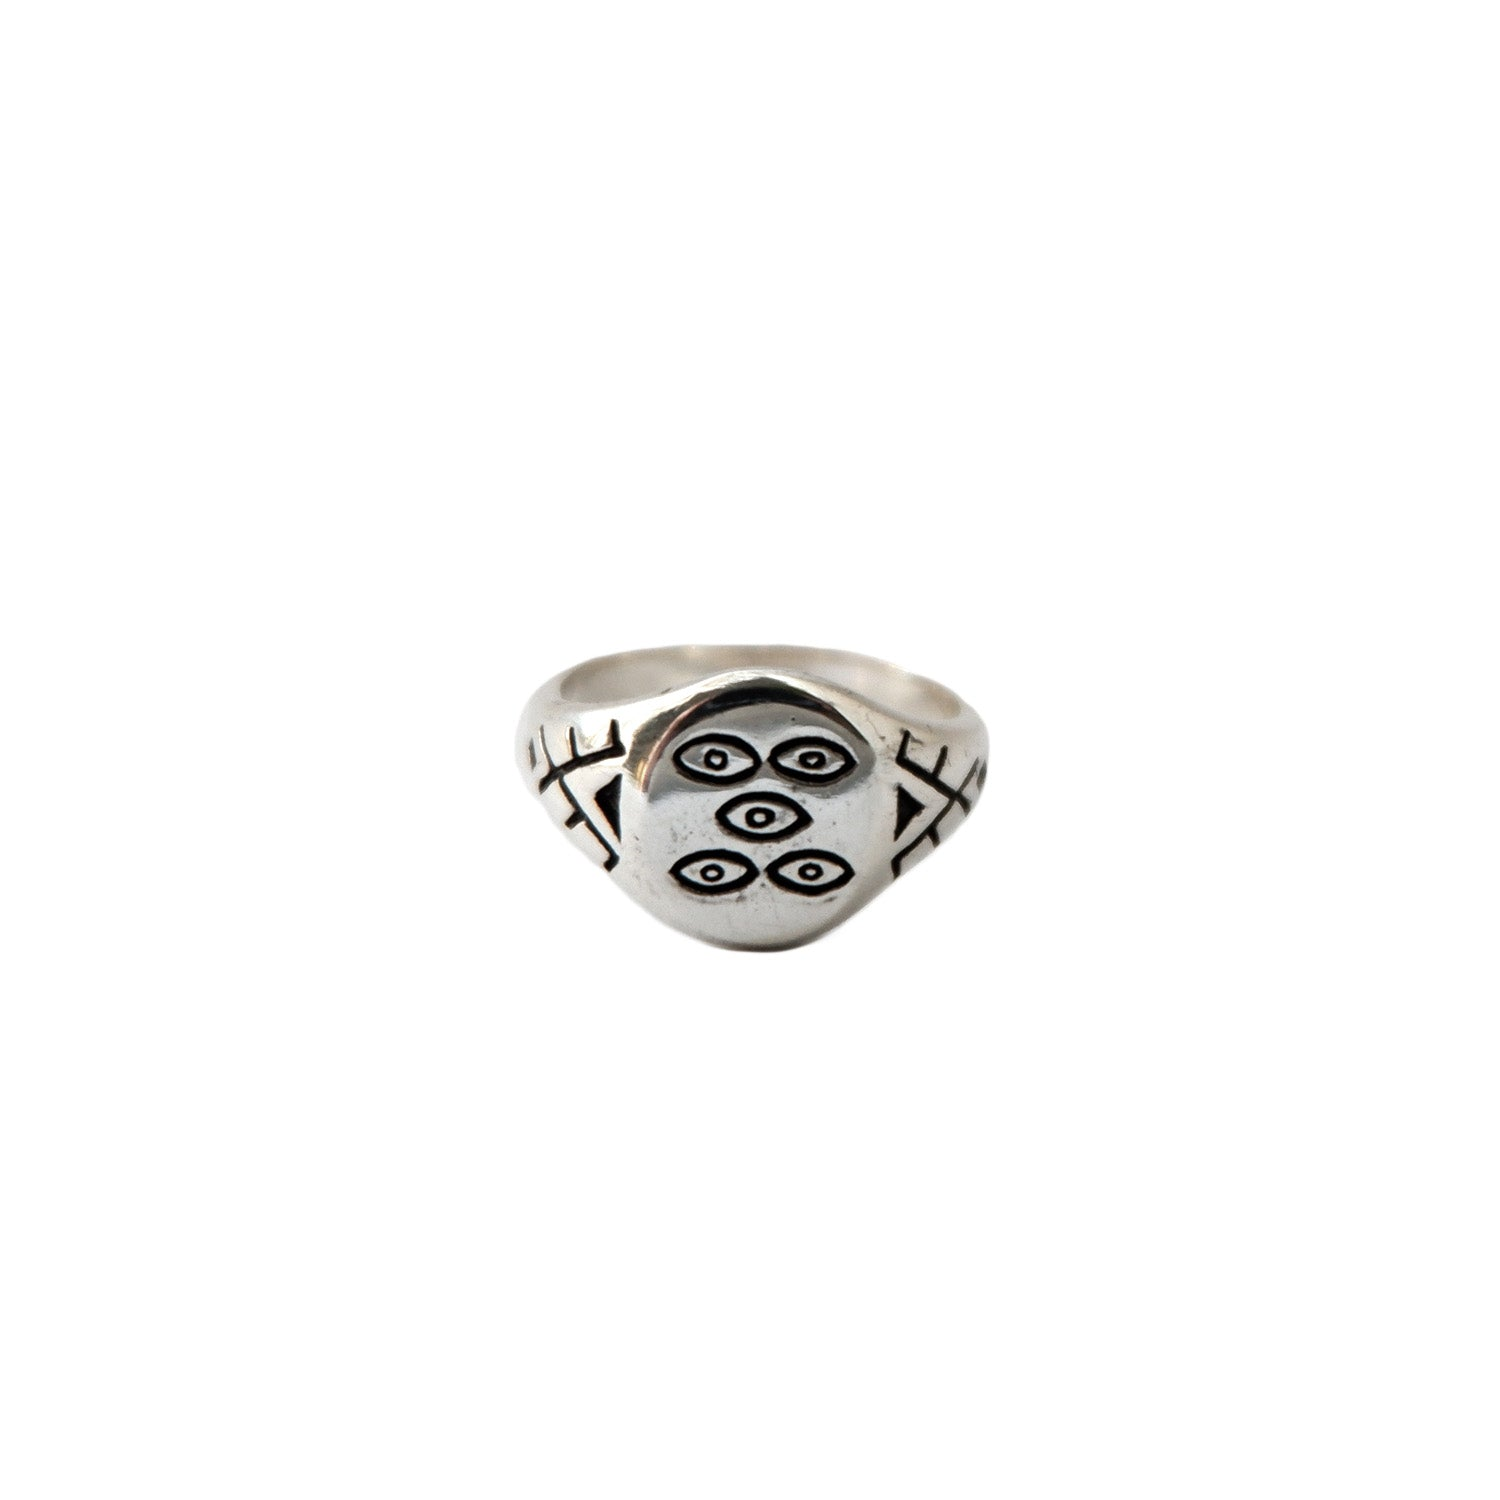 Hunt Of Hounds Mini Mata Signet Ring. Symbol of protection and intelligence. Eyes. Pinky ring.